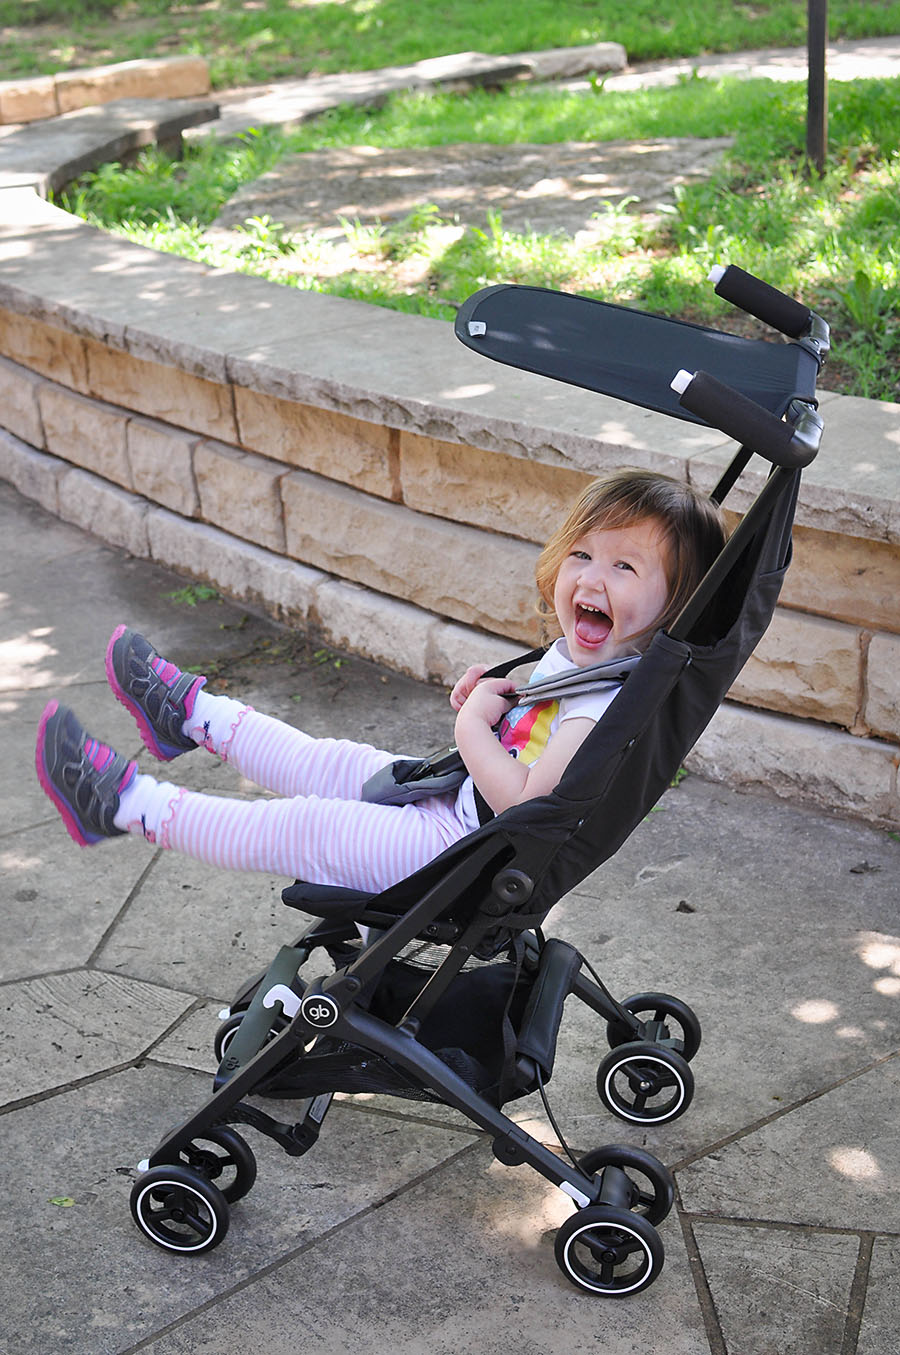 An Innovative Stroller for Travel | gb Pockit Review - Our ...